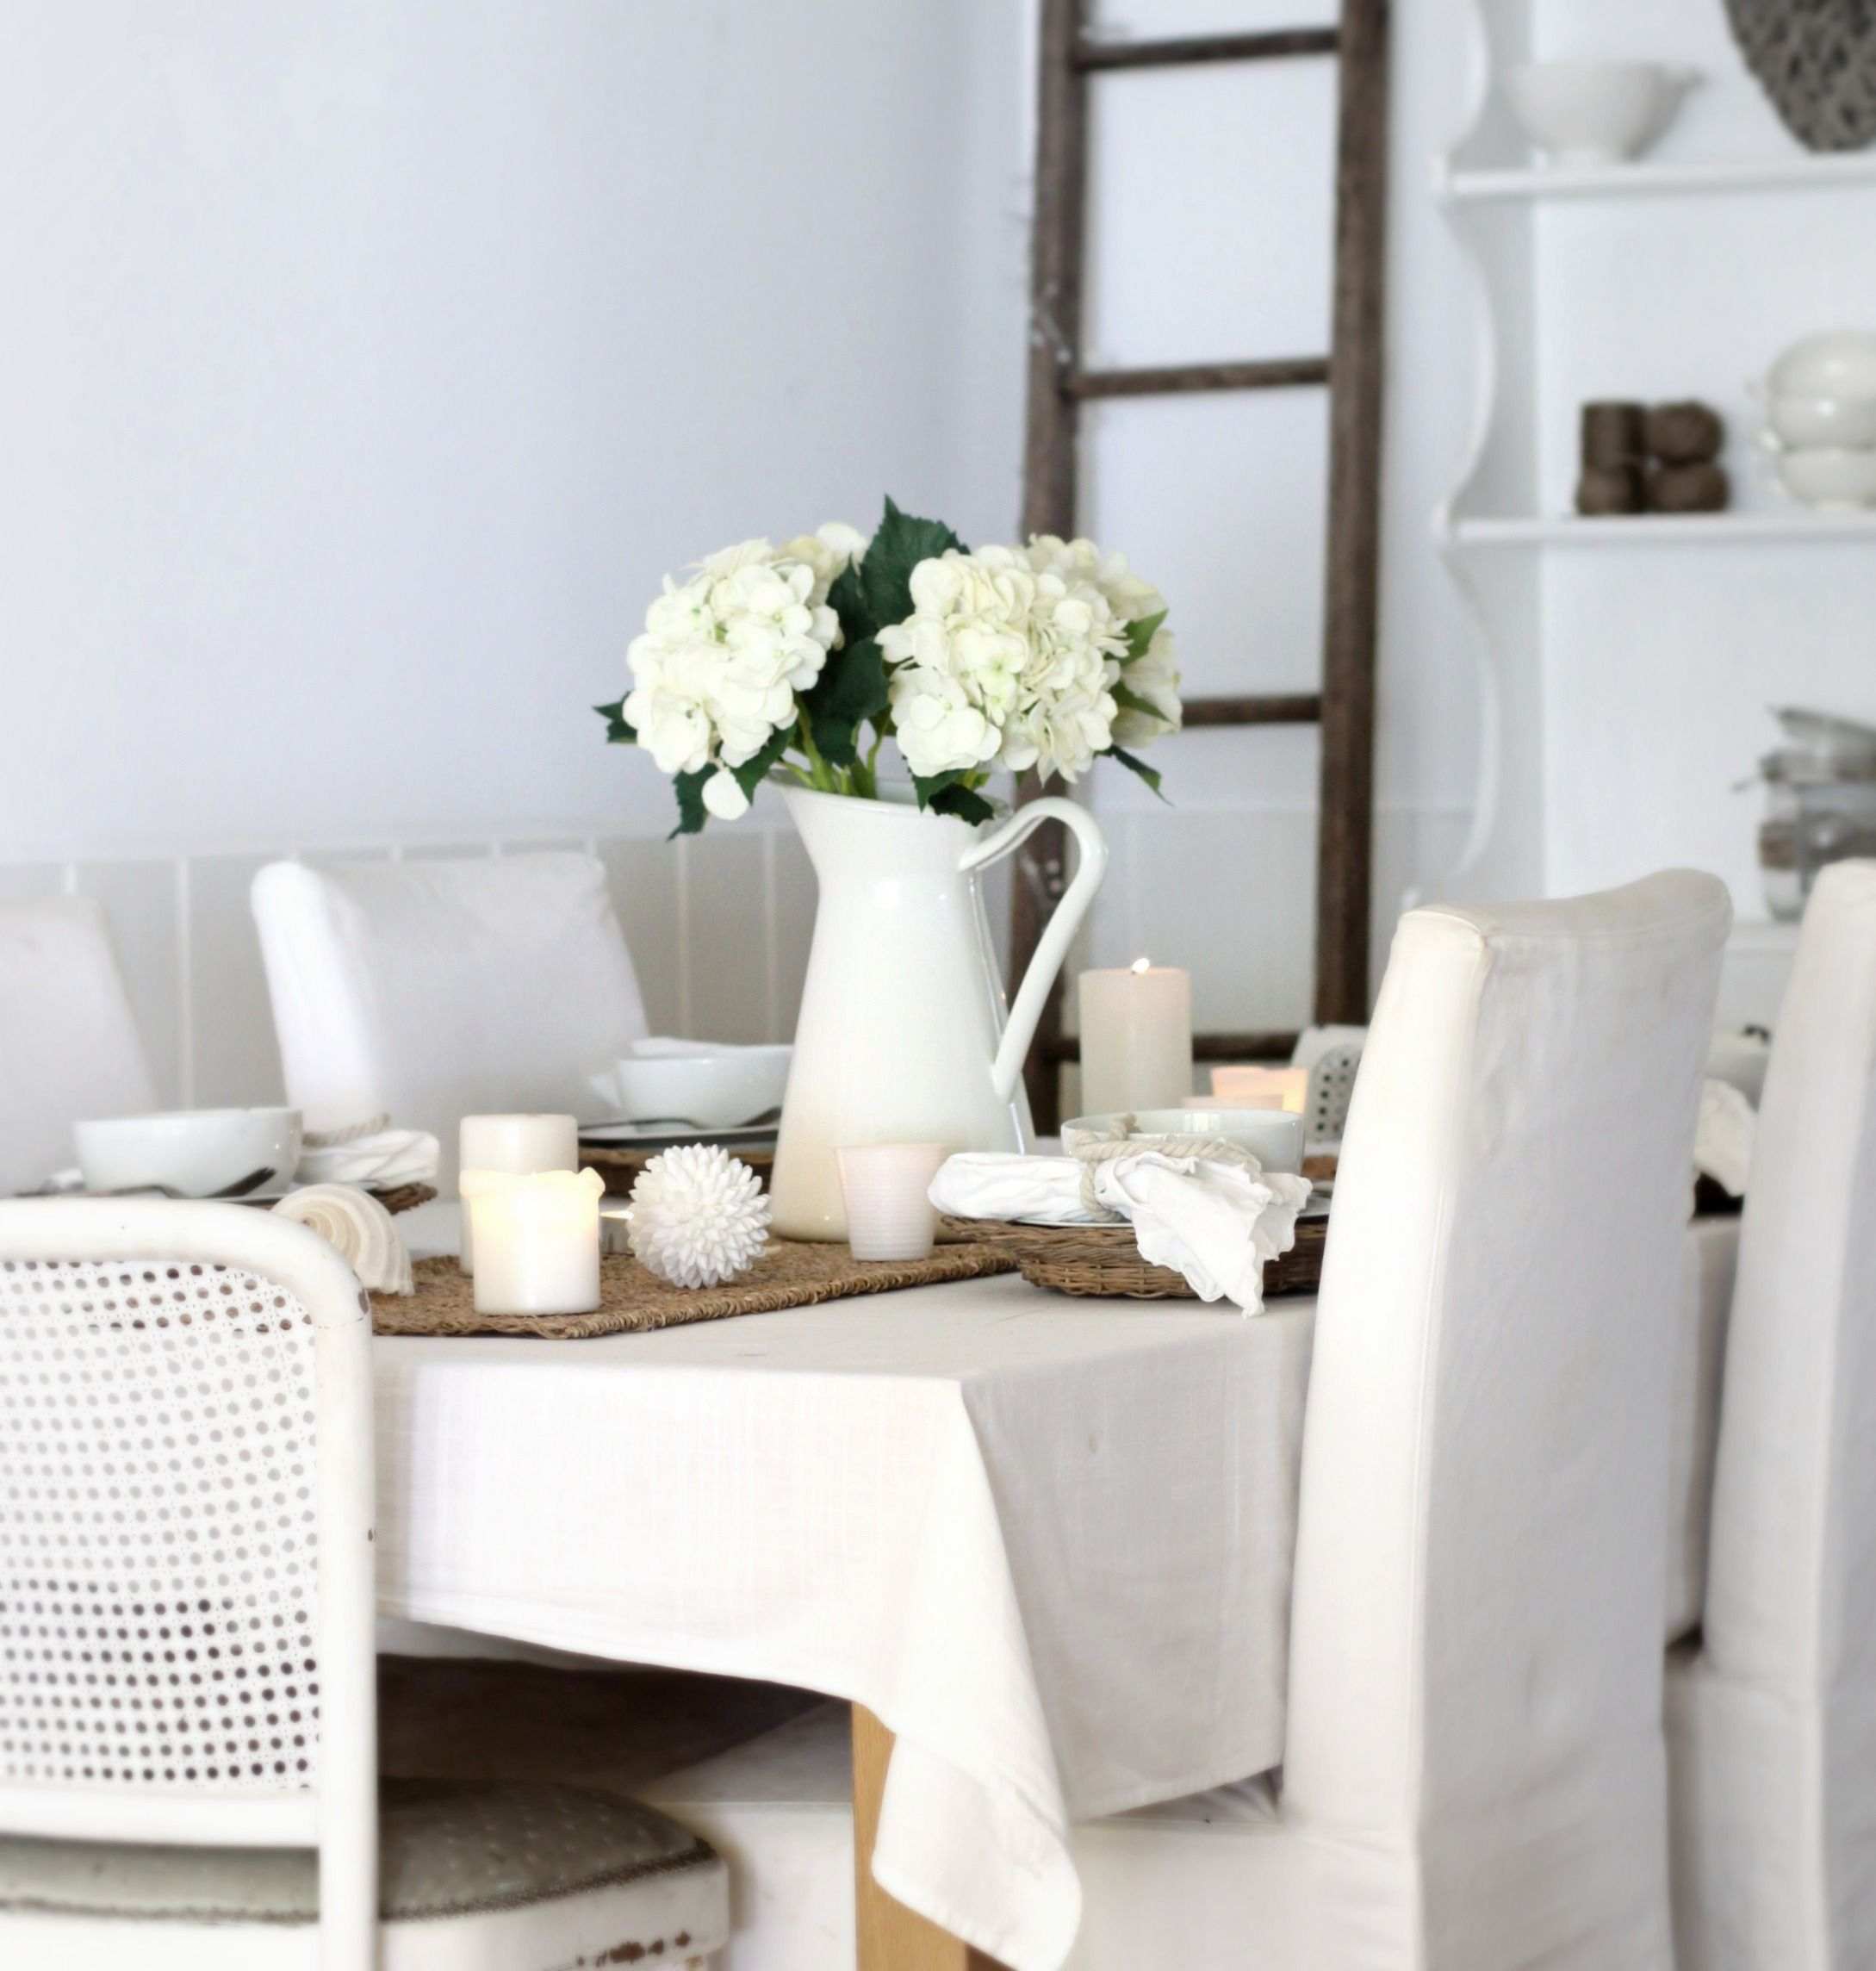 of modern decor best decorating concept glam full rooms images wall room for size coastal ideas photos dining about phenomenal decorving decorations beach living